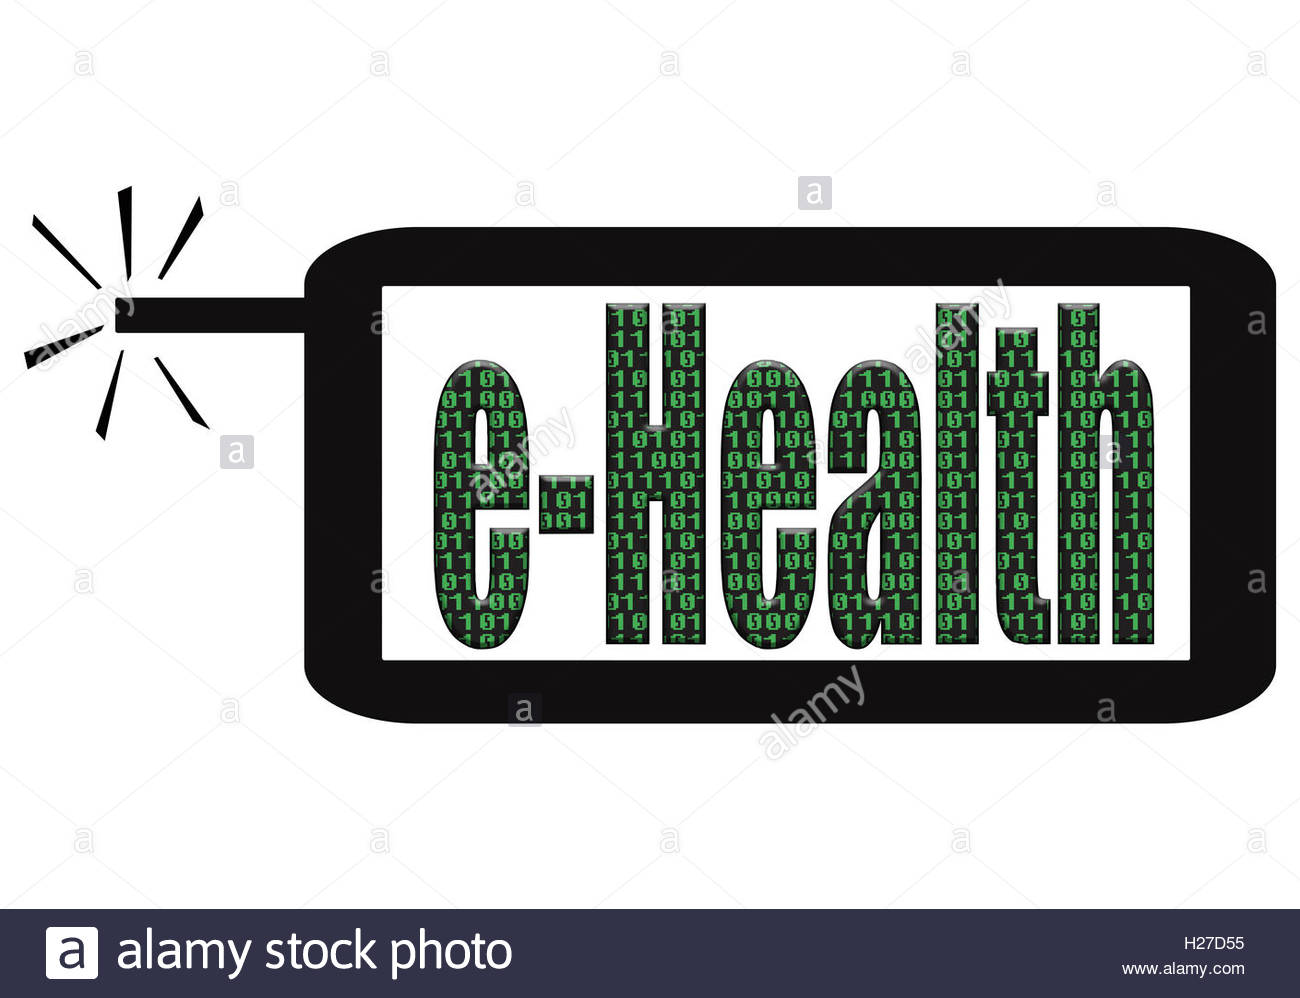 Digital illustration - App on smart phone. eHealth. Ehealth is medical practices backed up with electronic processes. - Stock Image